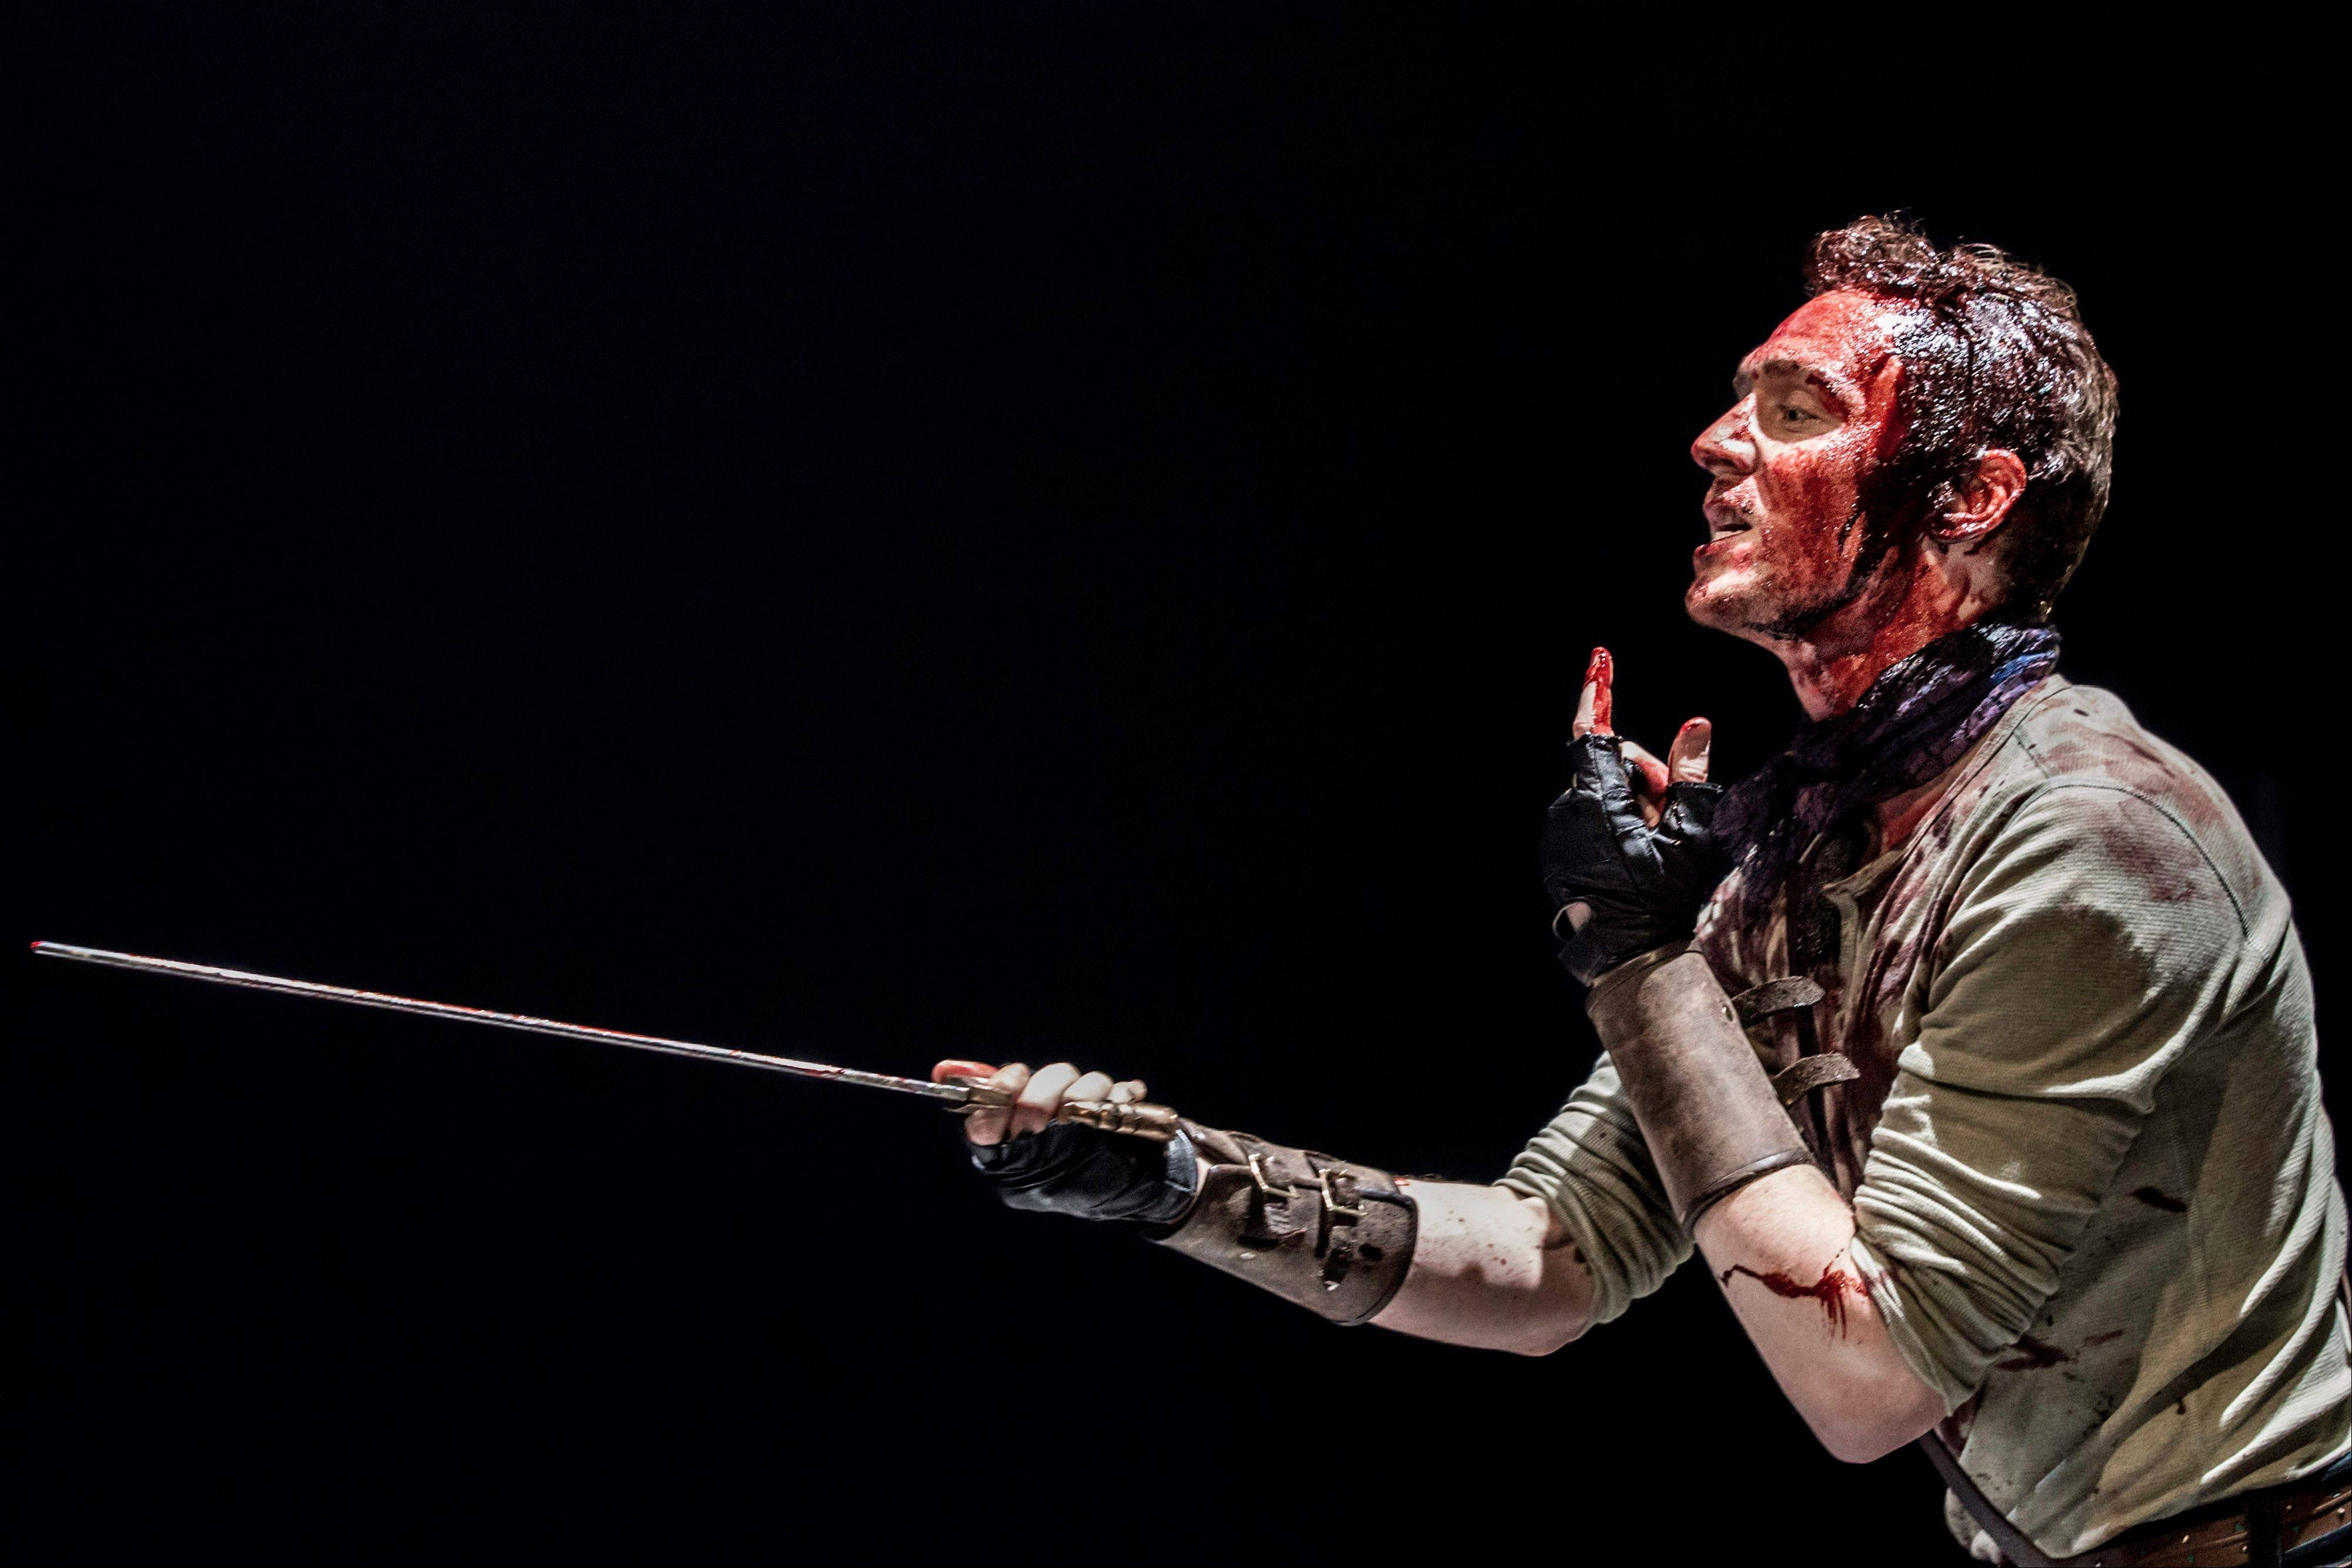 Actor Tom Hiddleston stars as Coriolanus in William Shakespeare's play, being performed at The Donmar warehouse in London.